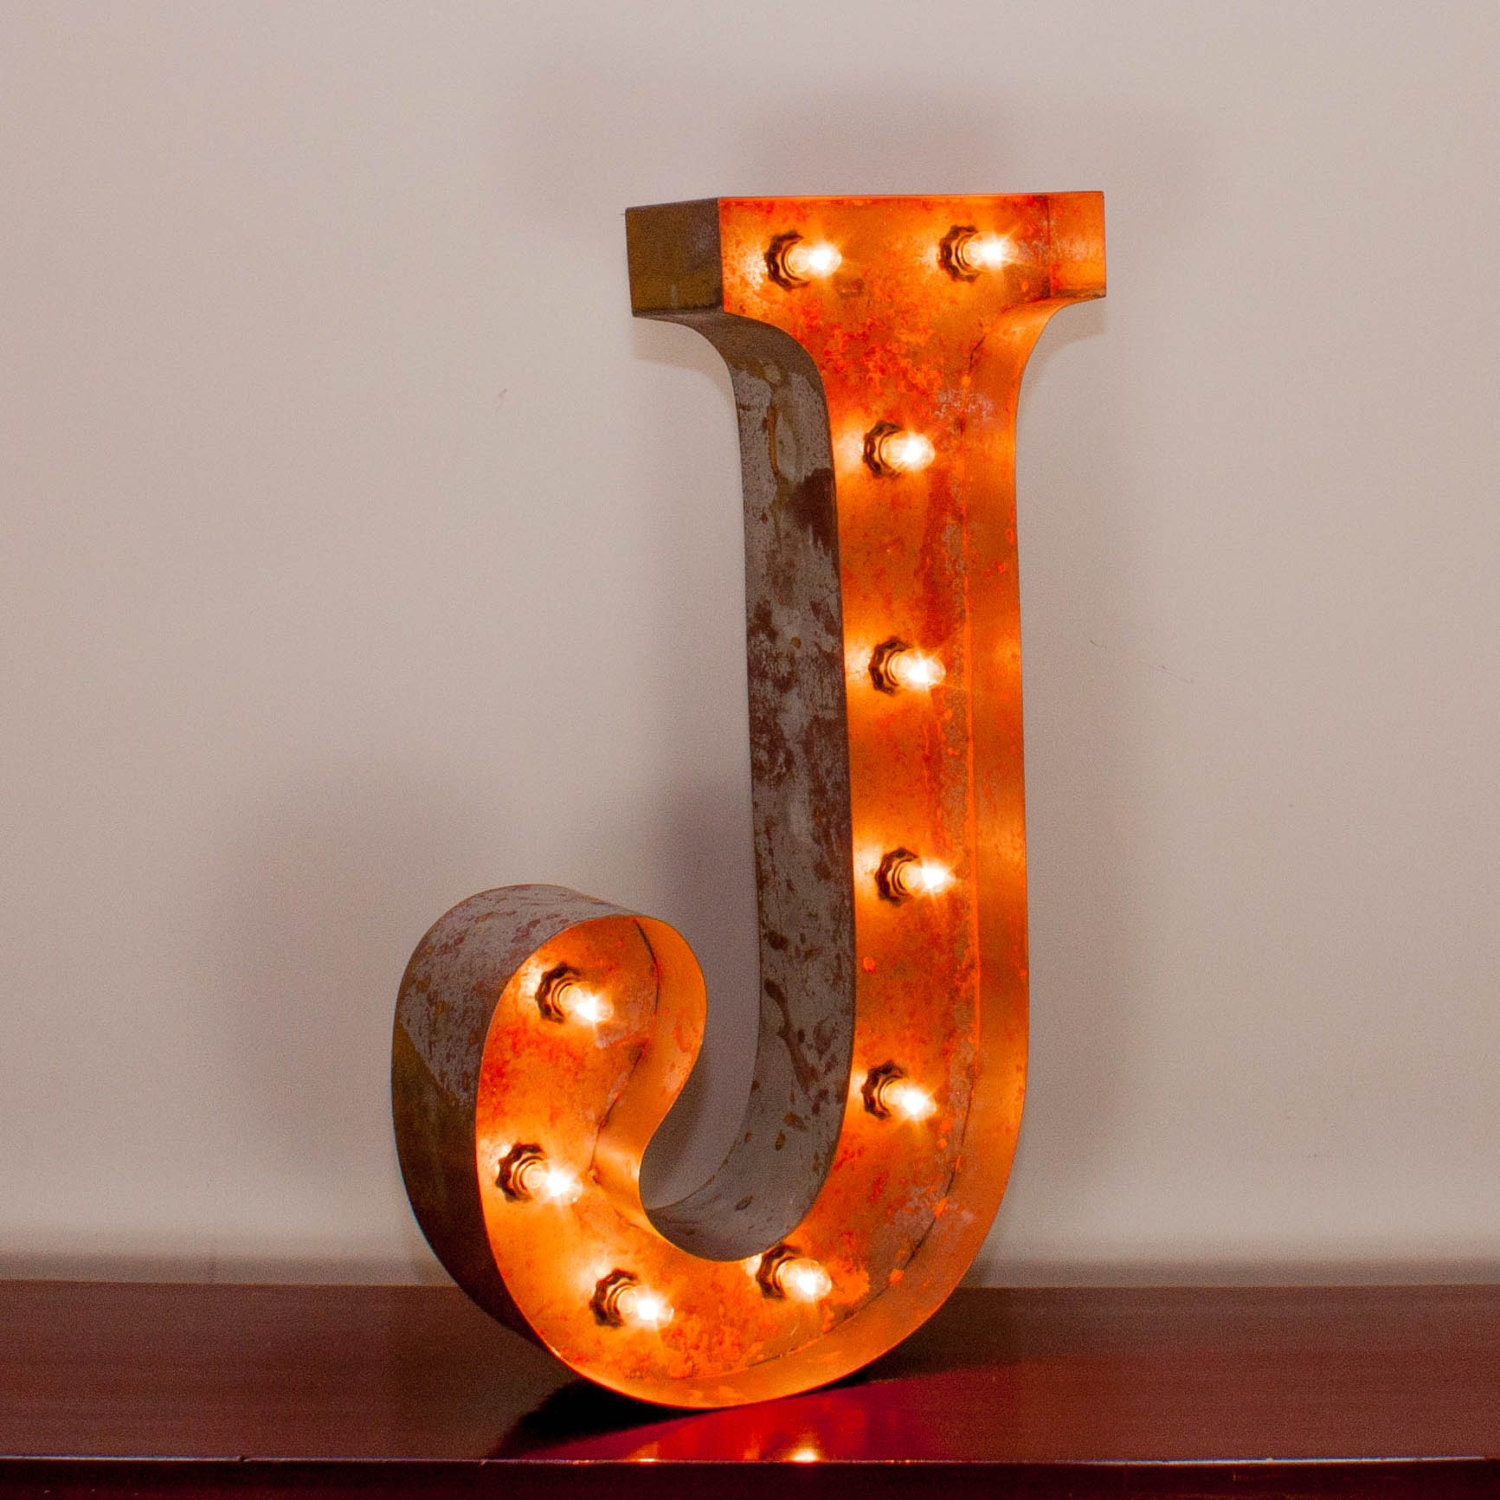 Vintage Marquee Light Rusted Home Decor 24 Inch By